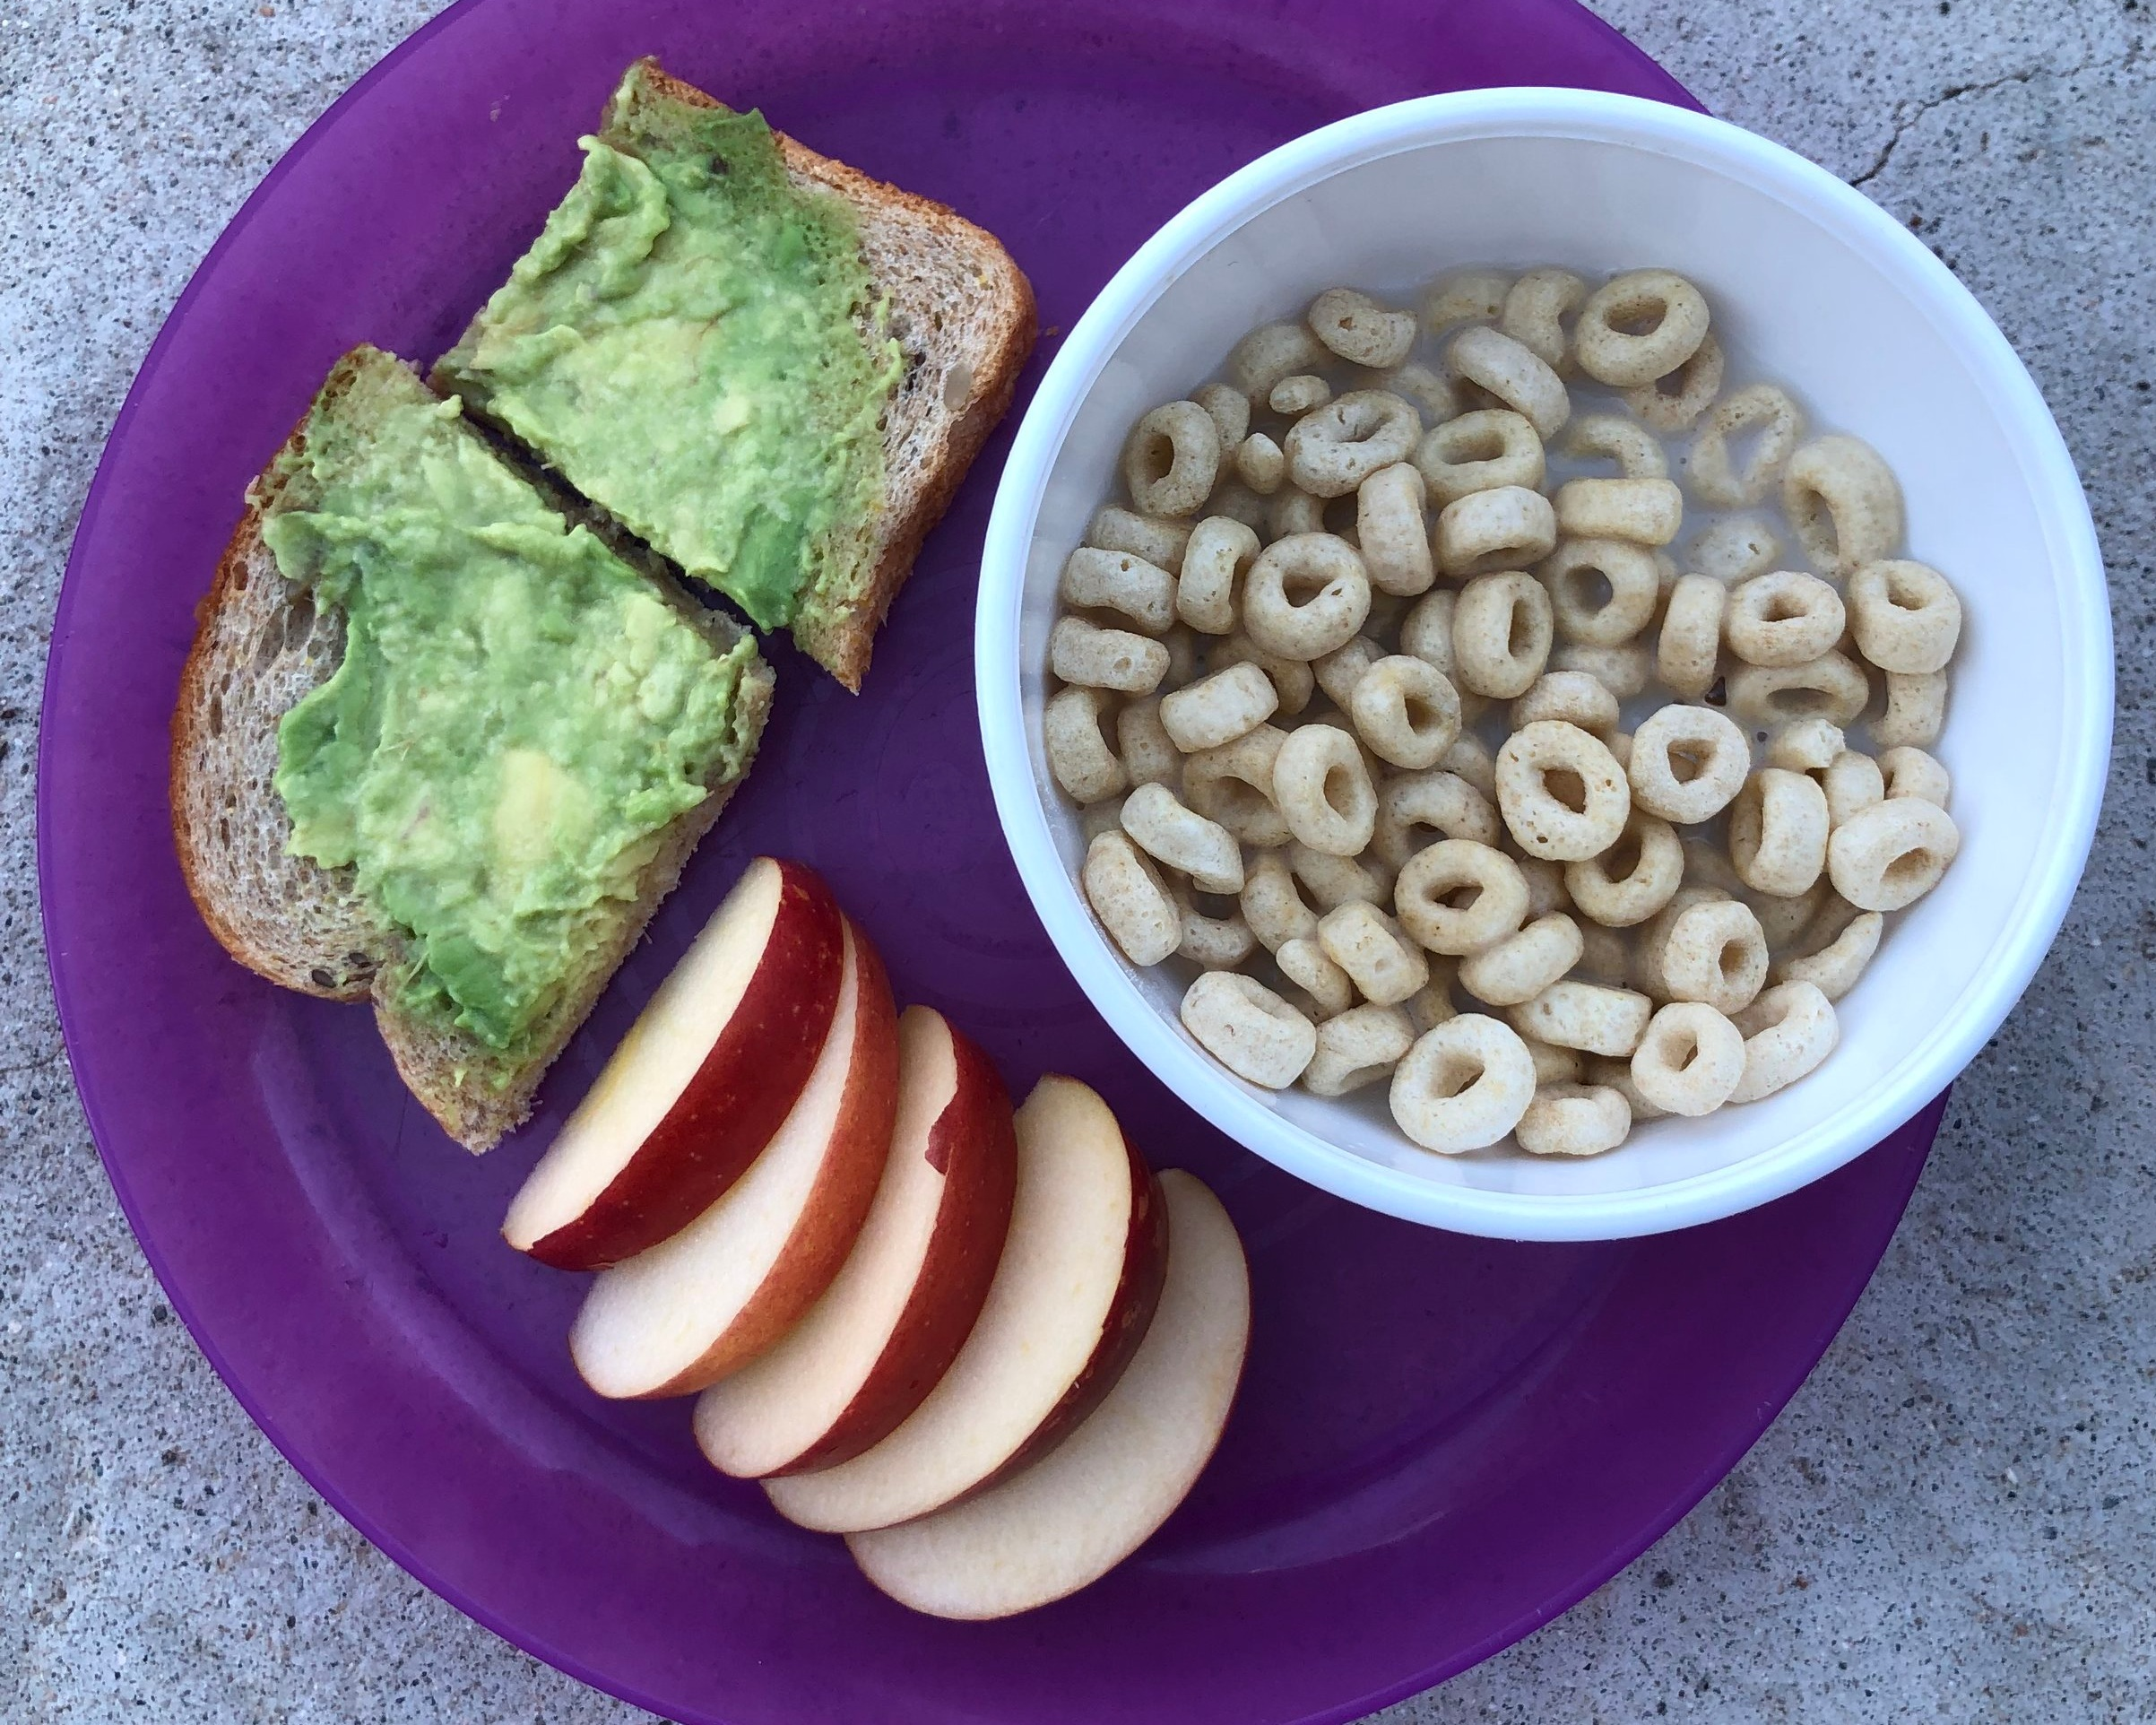 Day 6 - Avocado toast, Cheerios and milk with fruitAvocado toast is one of my favorites, and my kids seem to like it too. Cheerios are a staple. This picture really describes itself!